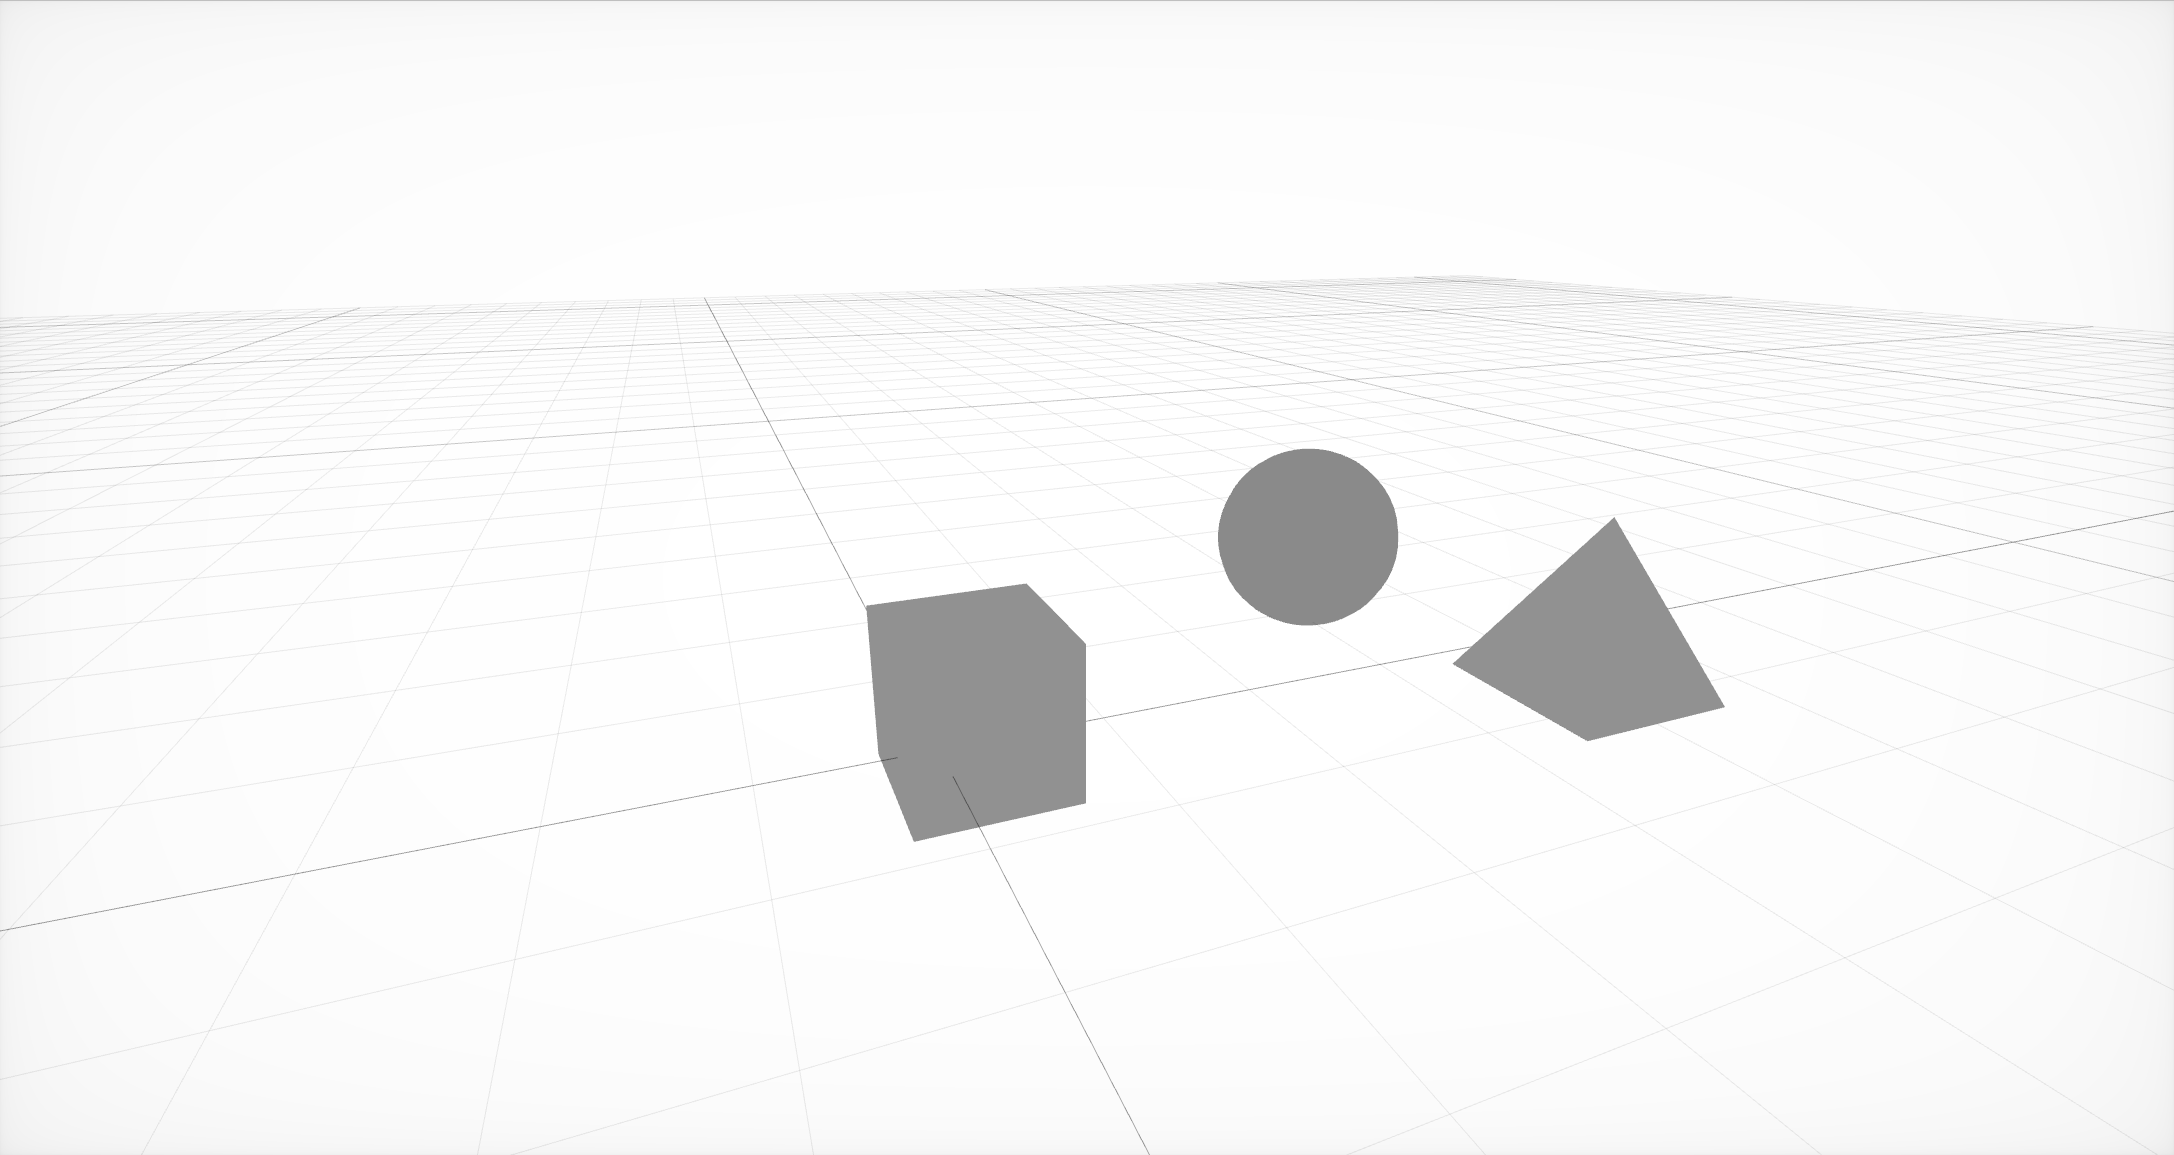 The simplest scene of three nodes with geometry in them.